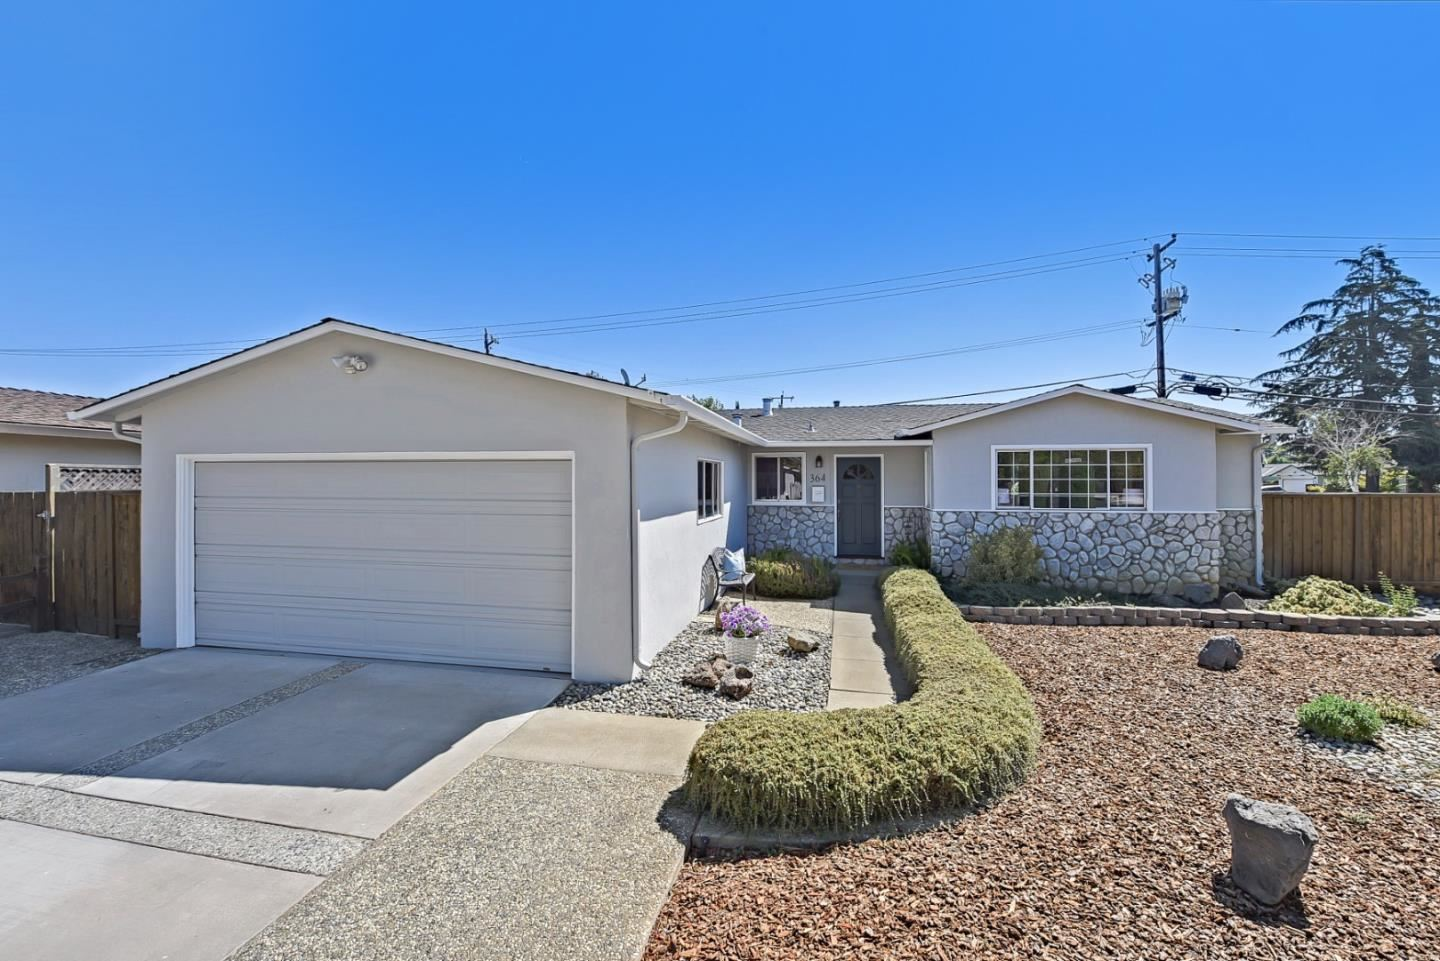 Photo for 364 Memphis Drive, CAMPBELL, CA 95008 (MLS # ML81857408)